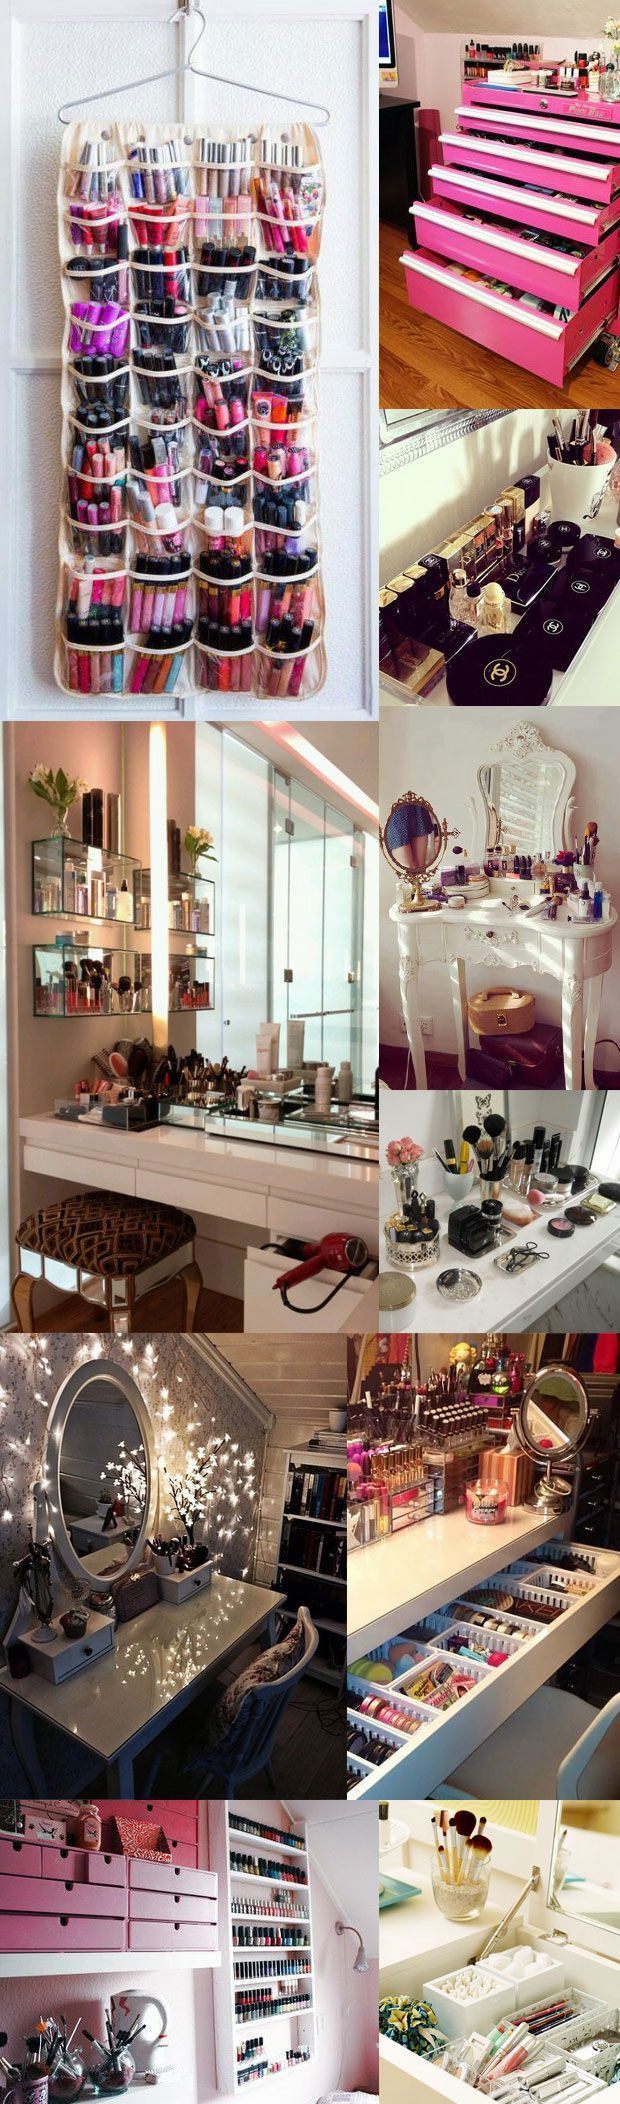 makeup organizing... i wish i had that much makeup...id look like im a pro makeup artist :) #makeup